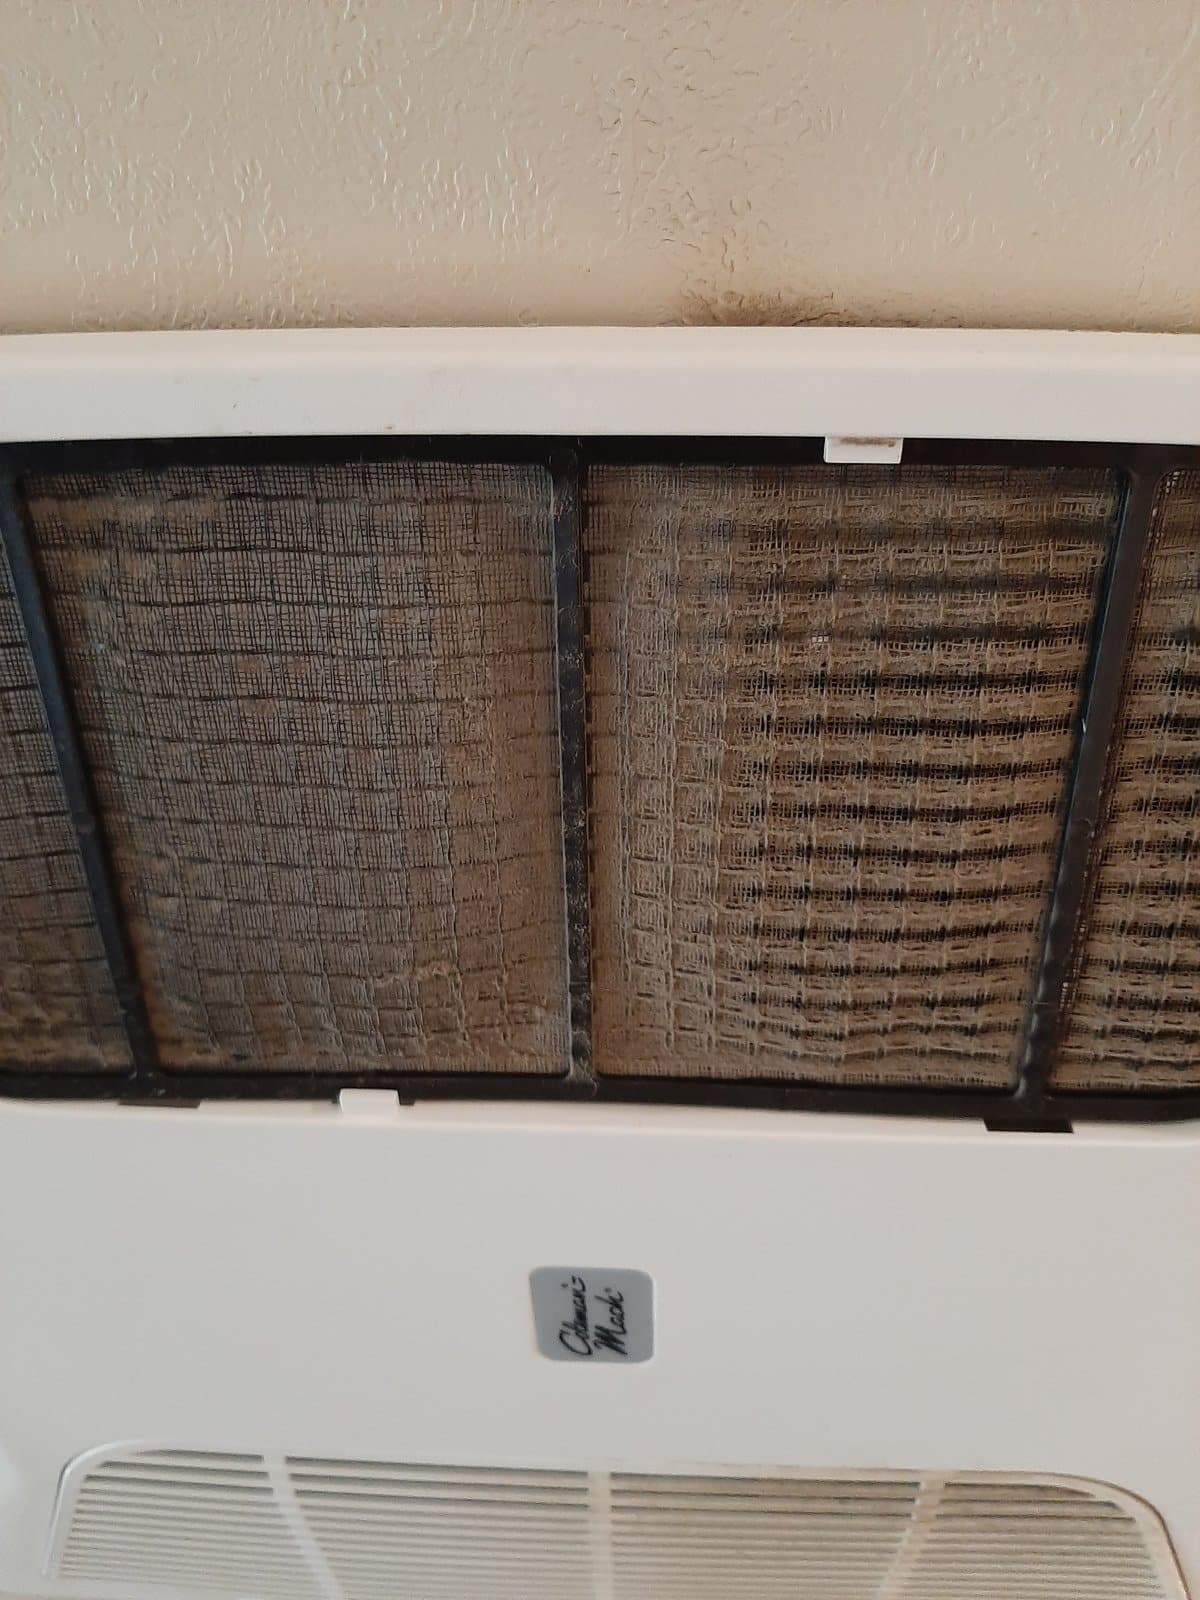 How to Clean an RV Air Conditioner Filter